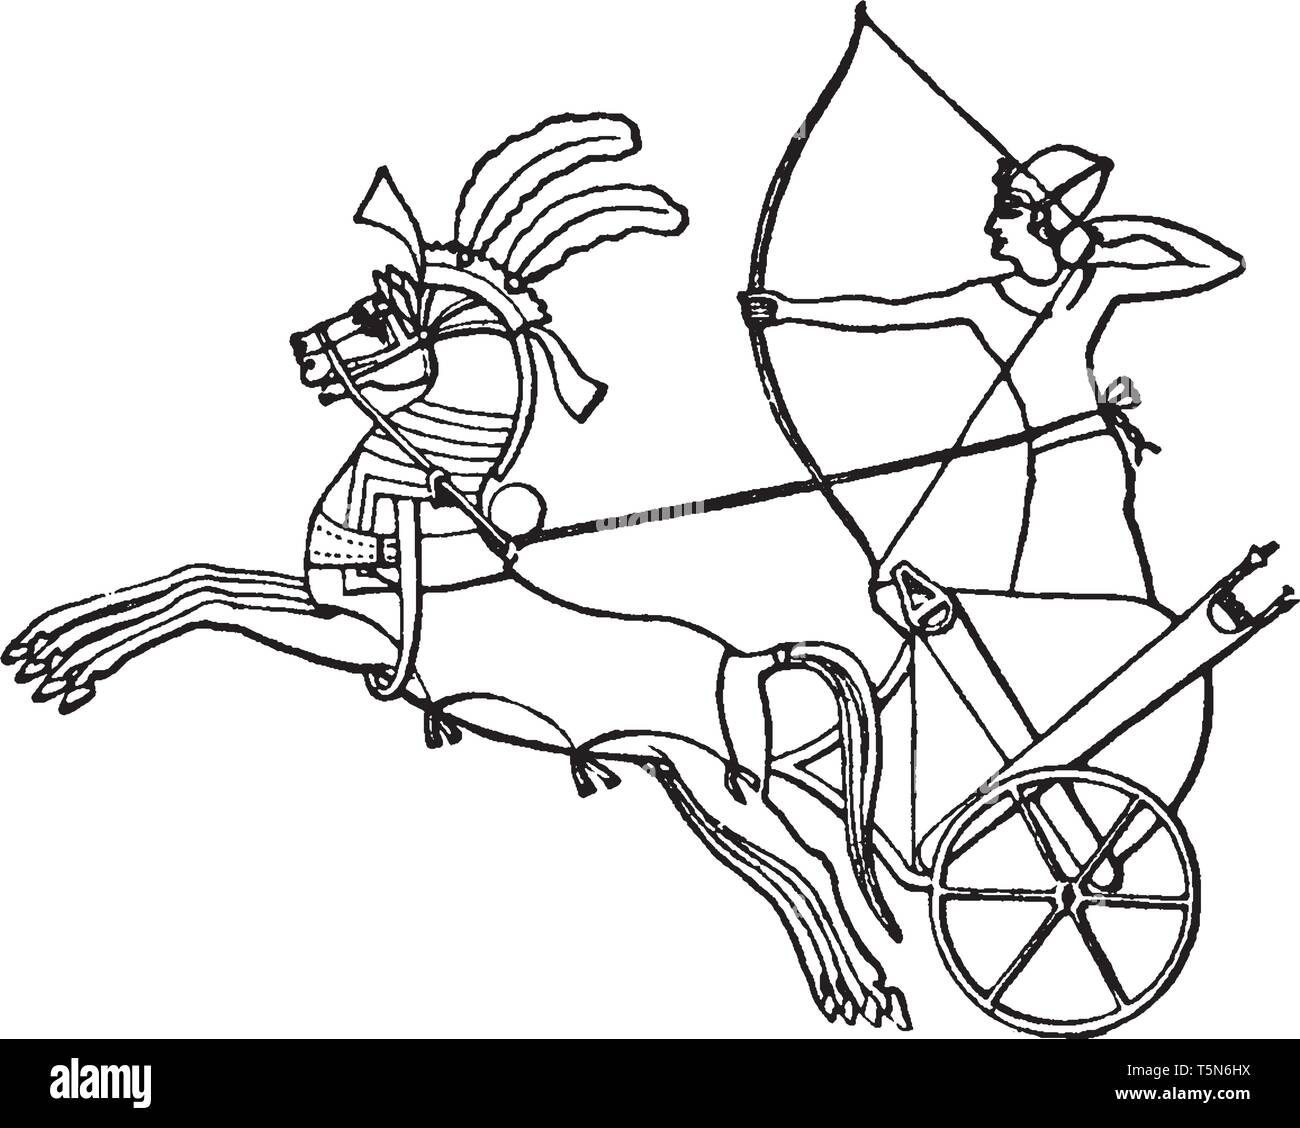 Egyptian War Chariot Was Certainly A Mode Of Transportation